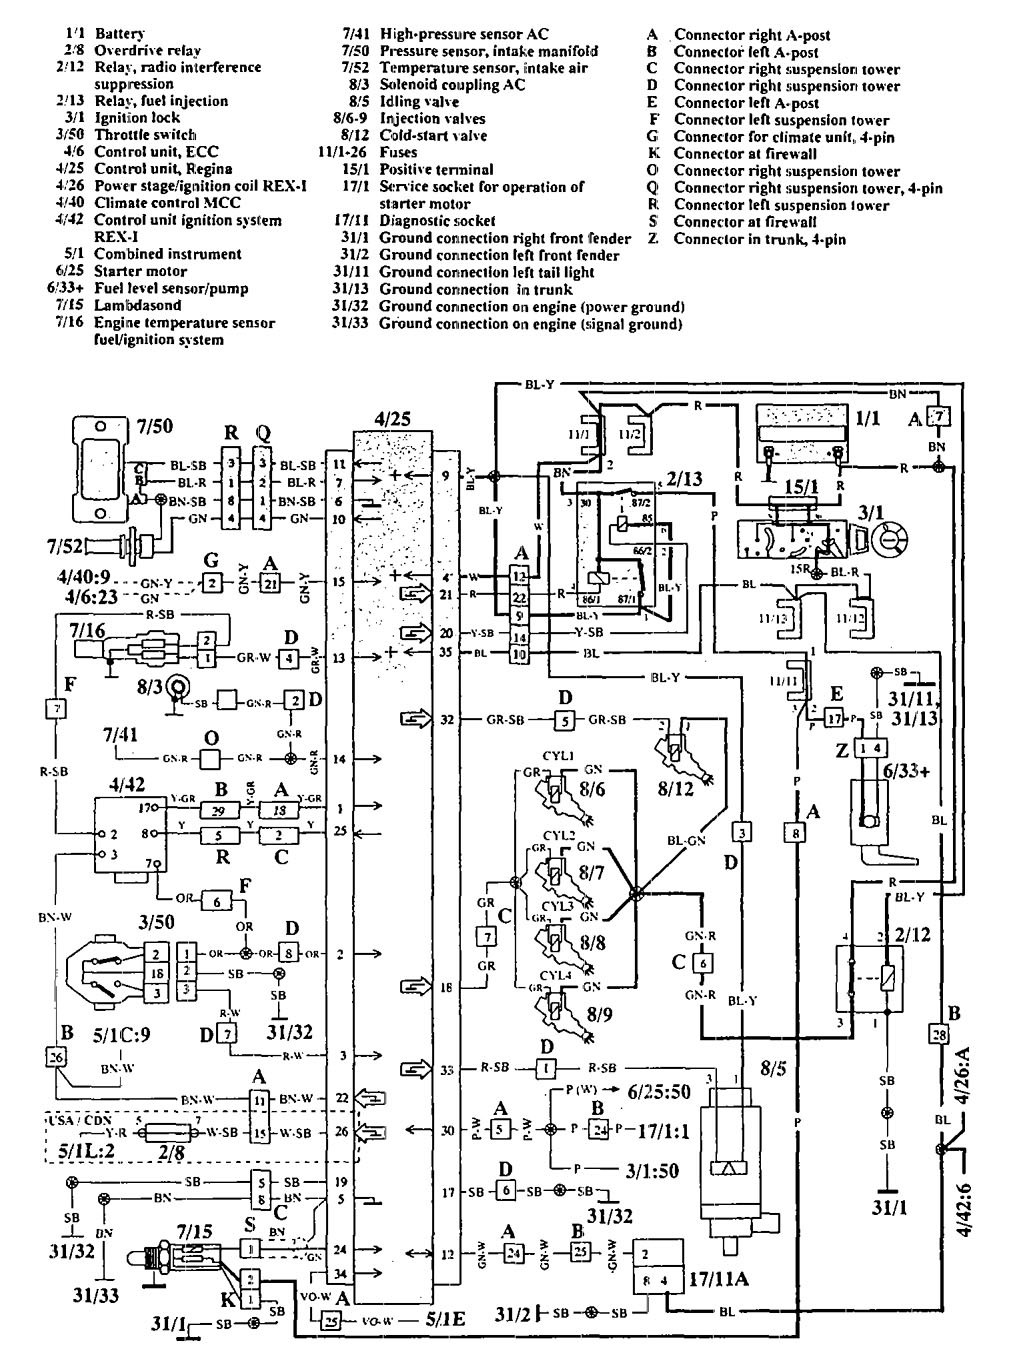 2001 Volvo V70 Fuel Pump T5 Wiring Diagram Wiring Diagram